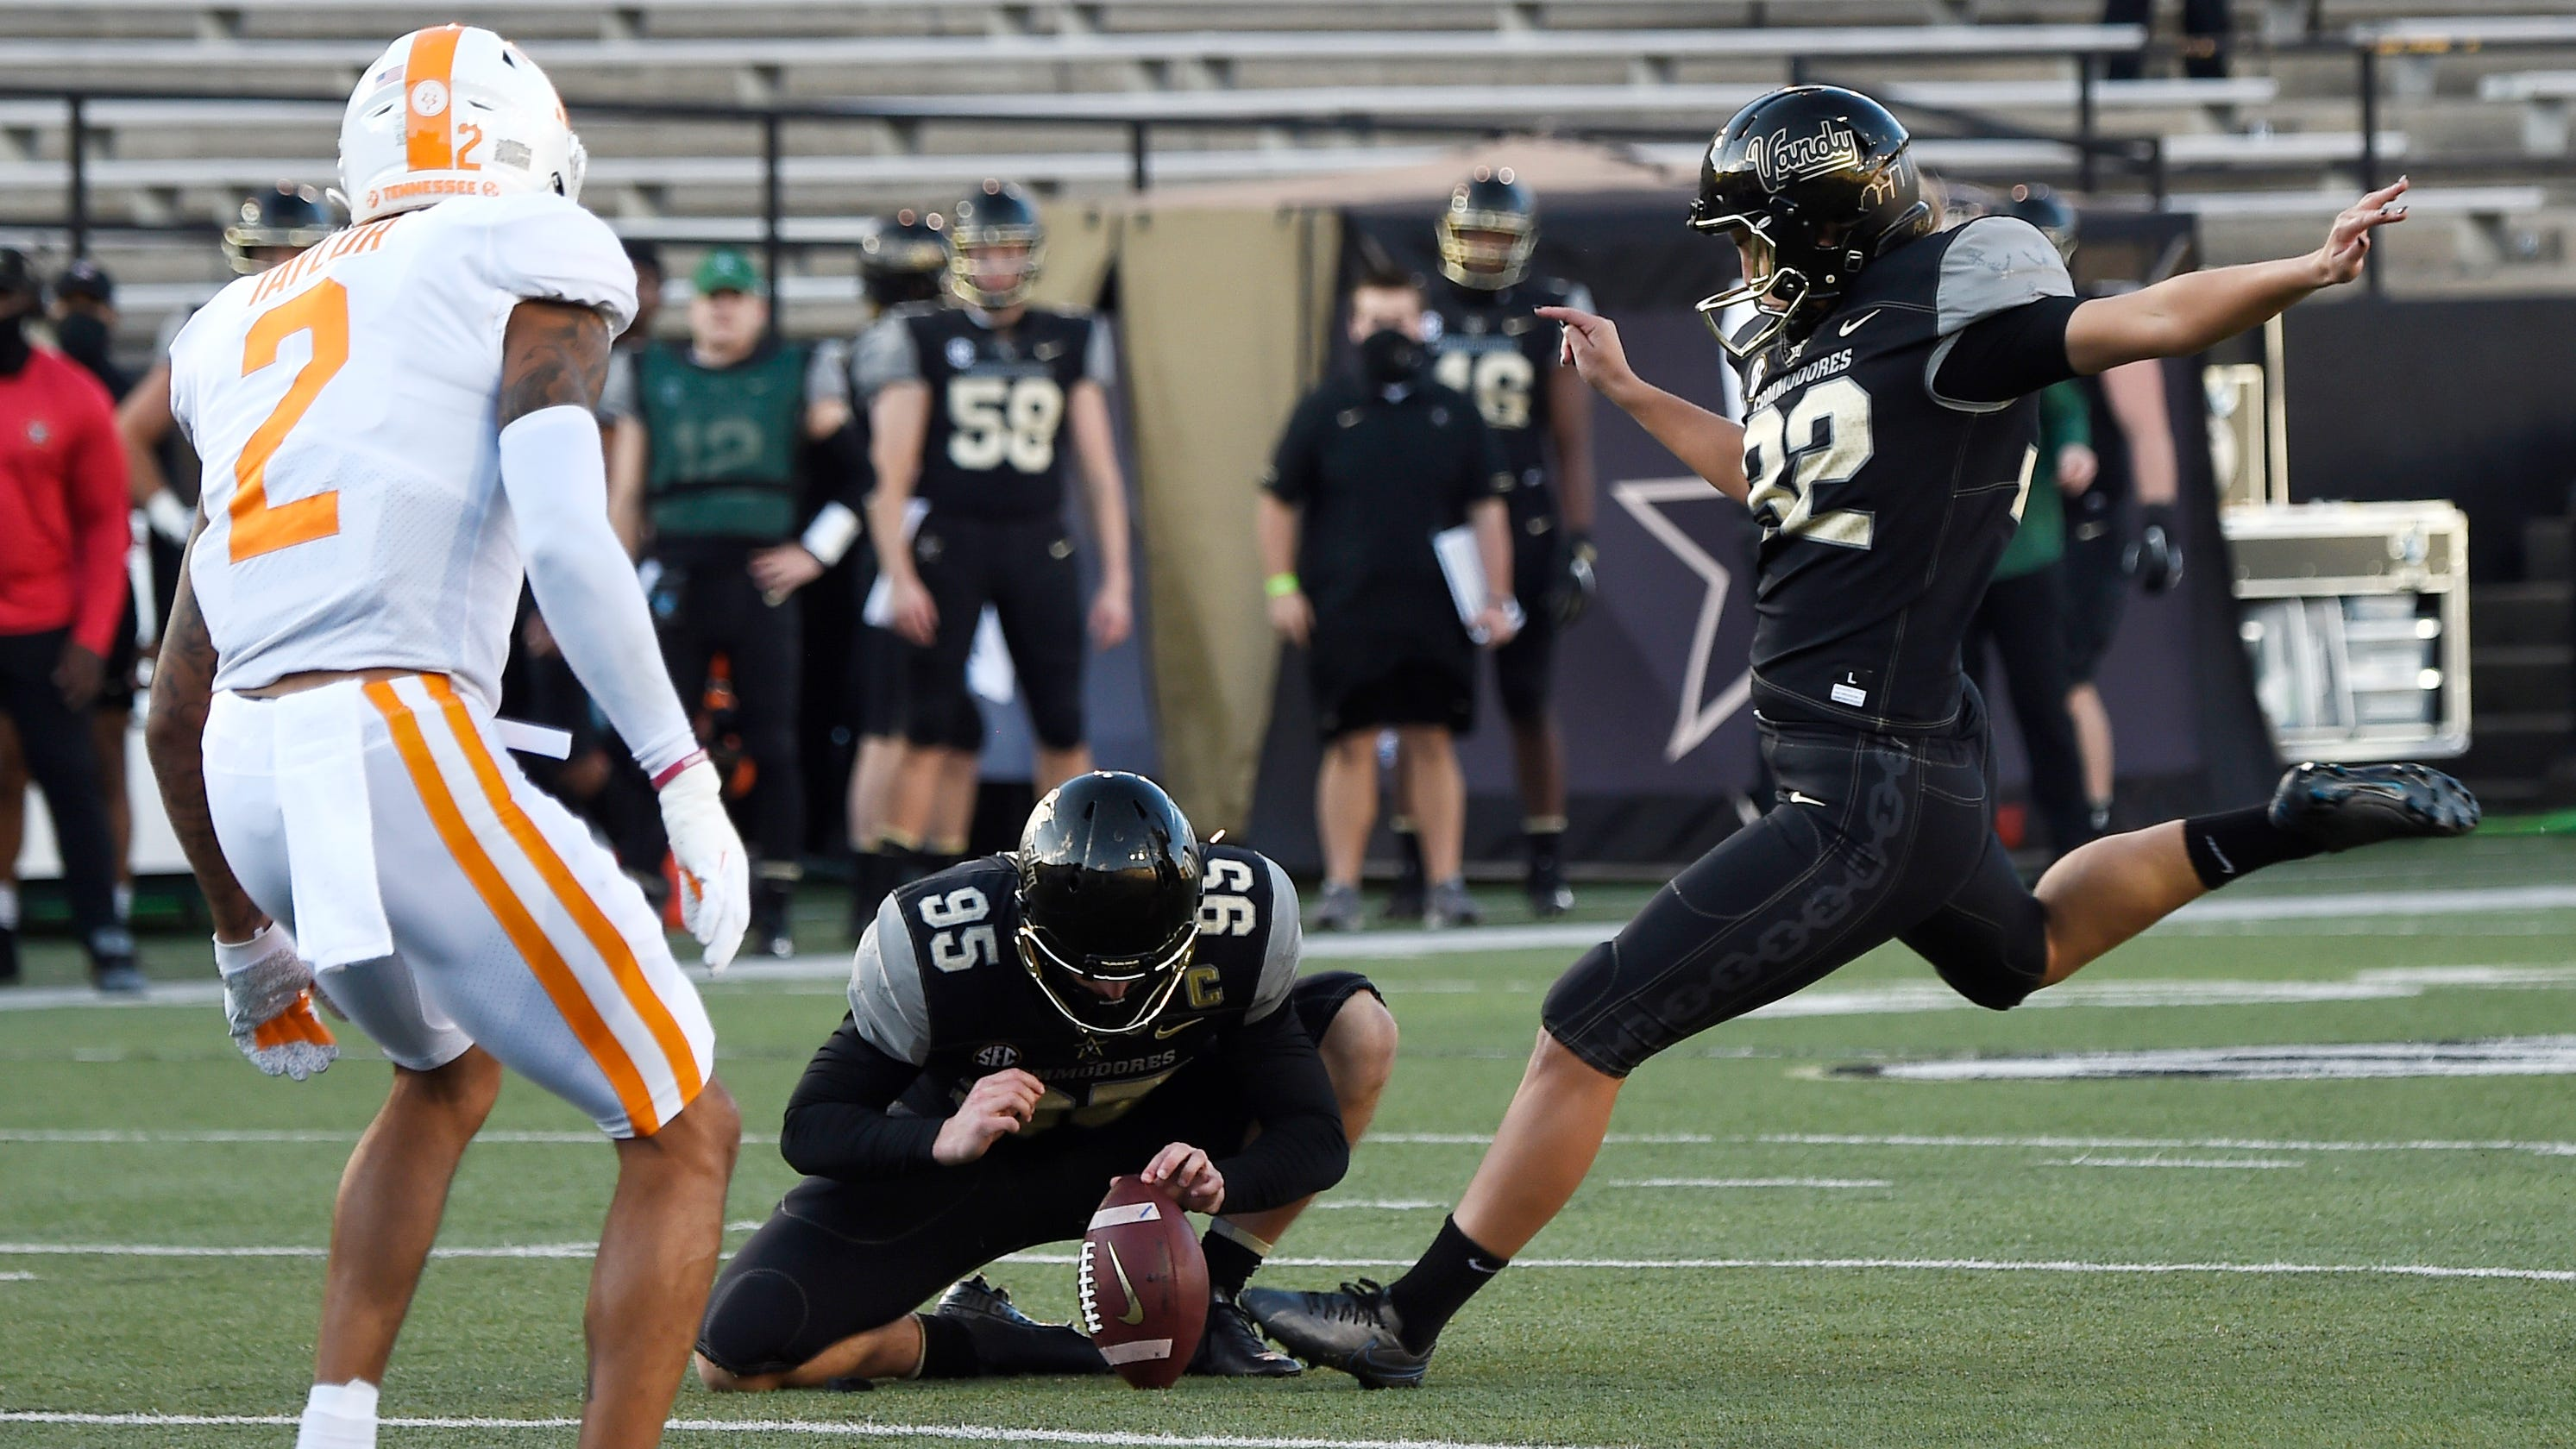 Vanderbilt kicker Sarah Fuller becomes first woman to score in Power Five college football game